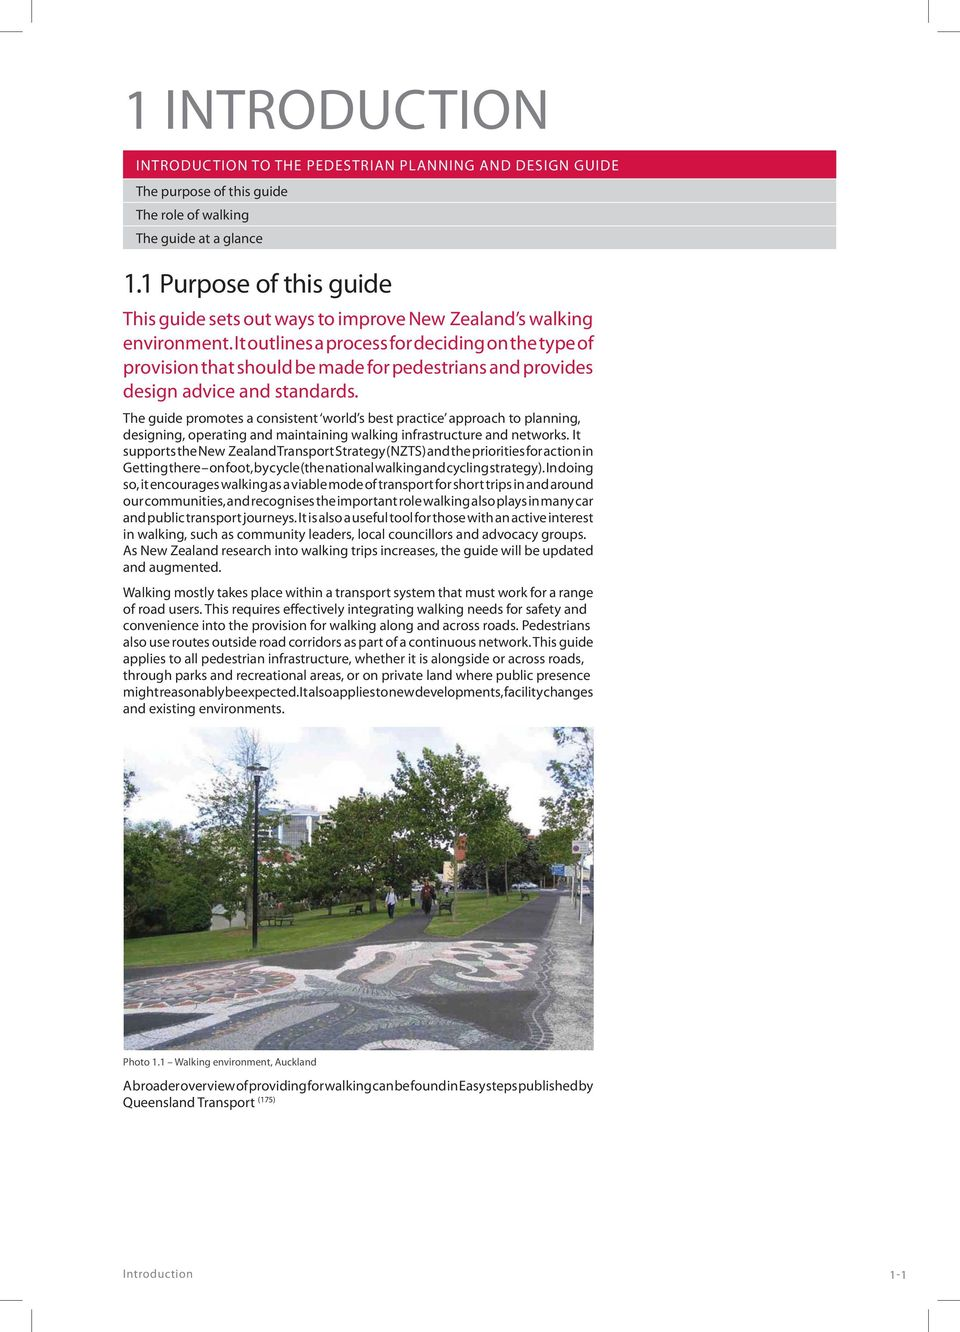 It outlines a process for deciding on the type of provision that should be made for pedestrians and provides design advice and standards.